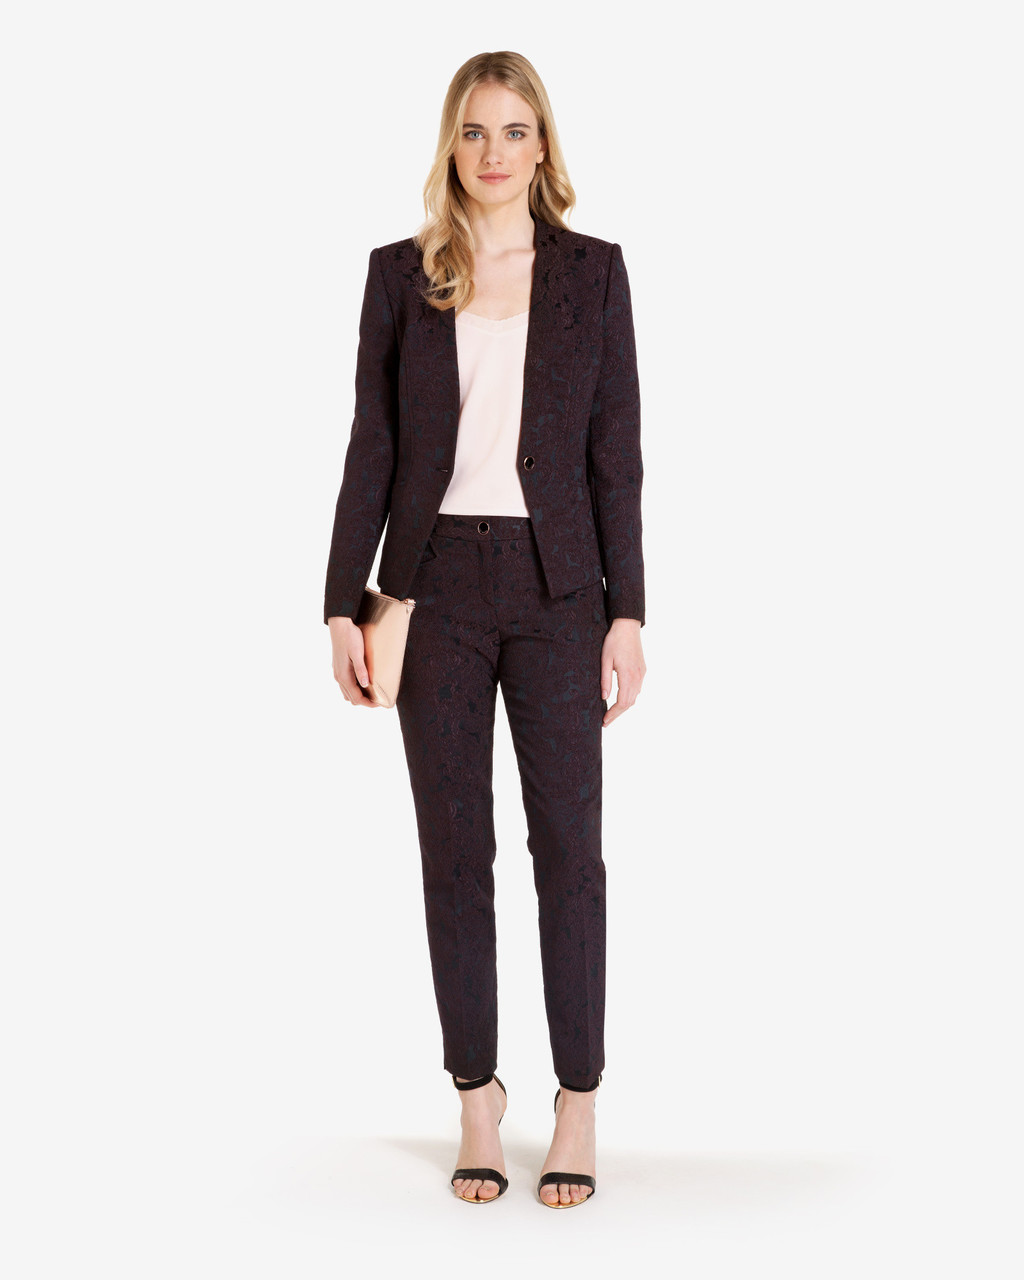 Floral Jacquard Suit Trousers Deep Purple - pattern: plain; waist: mid/regular rise; predominant colour: aubergine; occasions: work; length: ankle length; fibres: polyester/polyamide - 100%; fit: slim leg; pattern type: fabric; texture group: brocade/jacquard; style: standard; season: a/w 2016; wardrobe: highlight